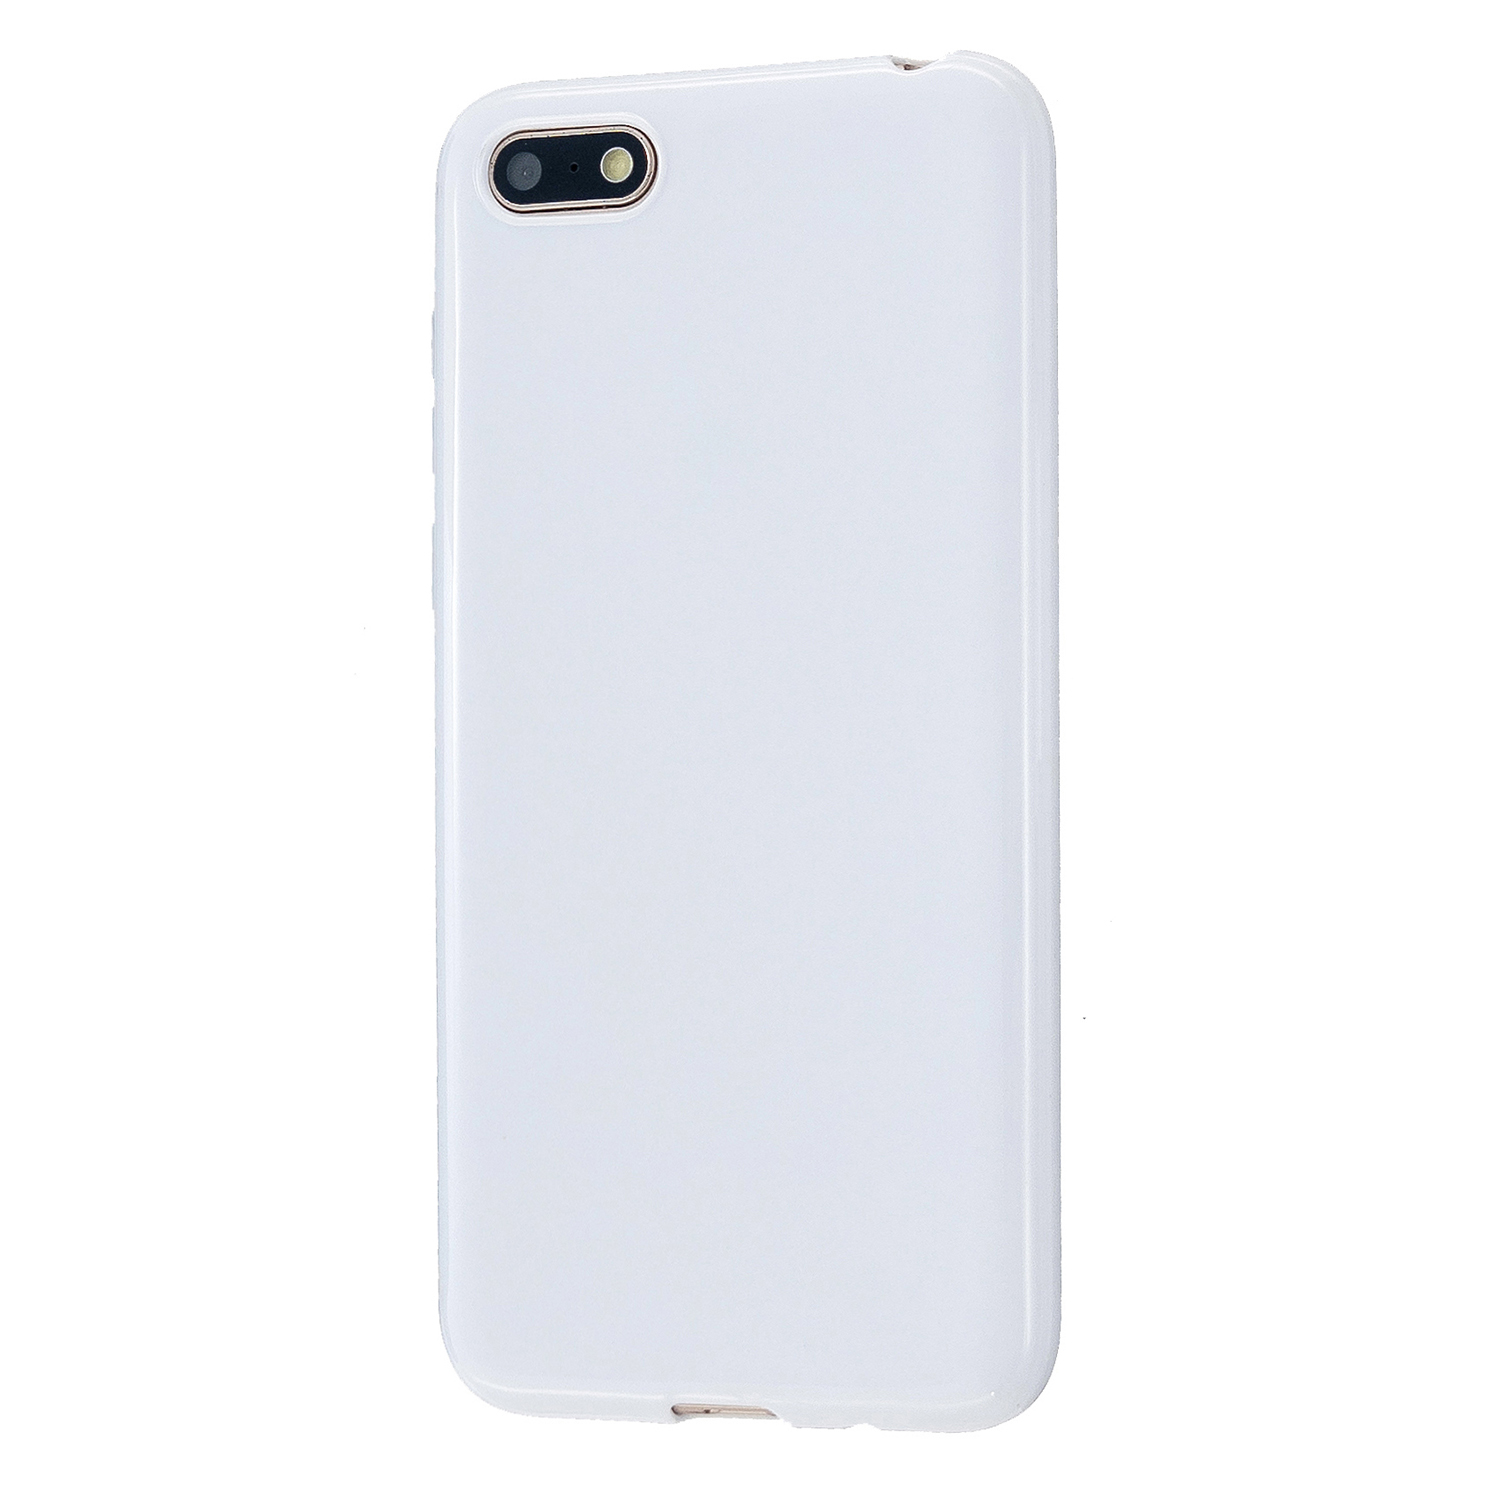 For HUAWEI Y5 2018/2019 TPU Phone Case Simple Profile Delicate Finish Cellphone Cover Full Body Protection Milk white